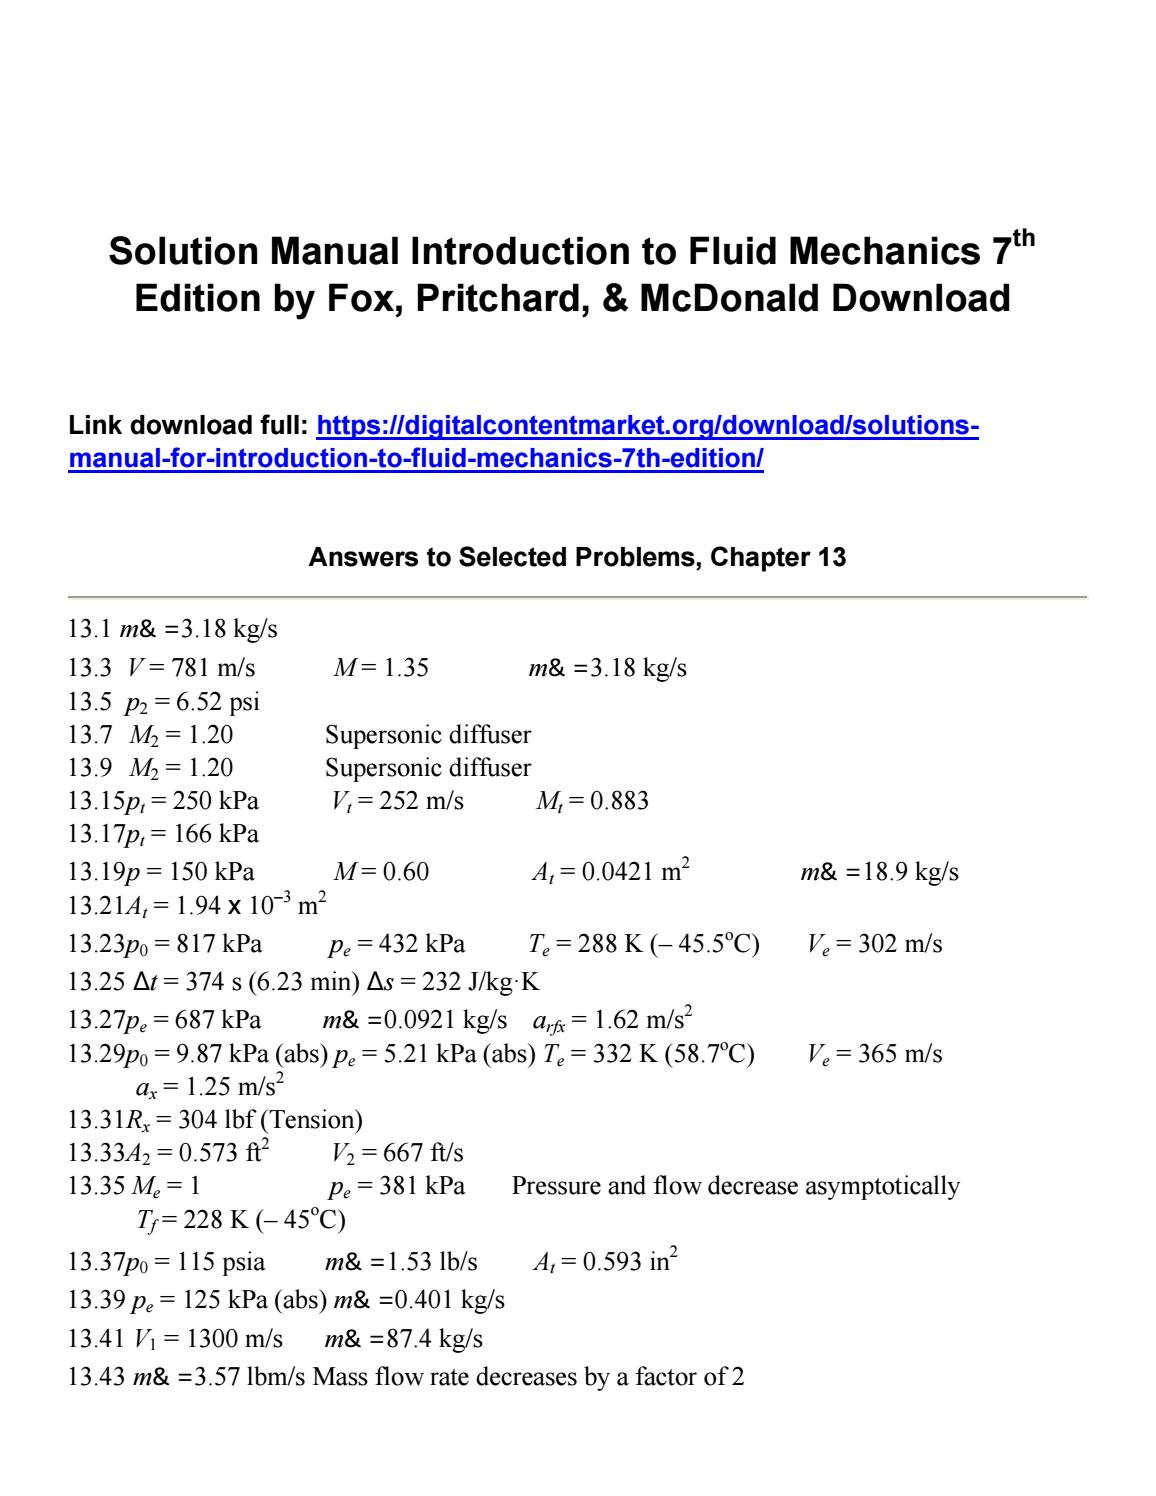 Solution manual introduction to fluid mechanics 7th edition by fox  pritchard mcdonald download by billtrump345 - issuu